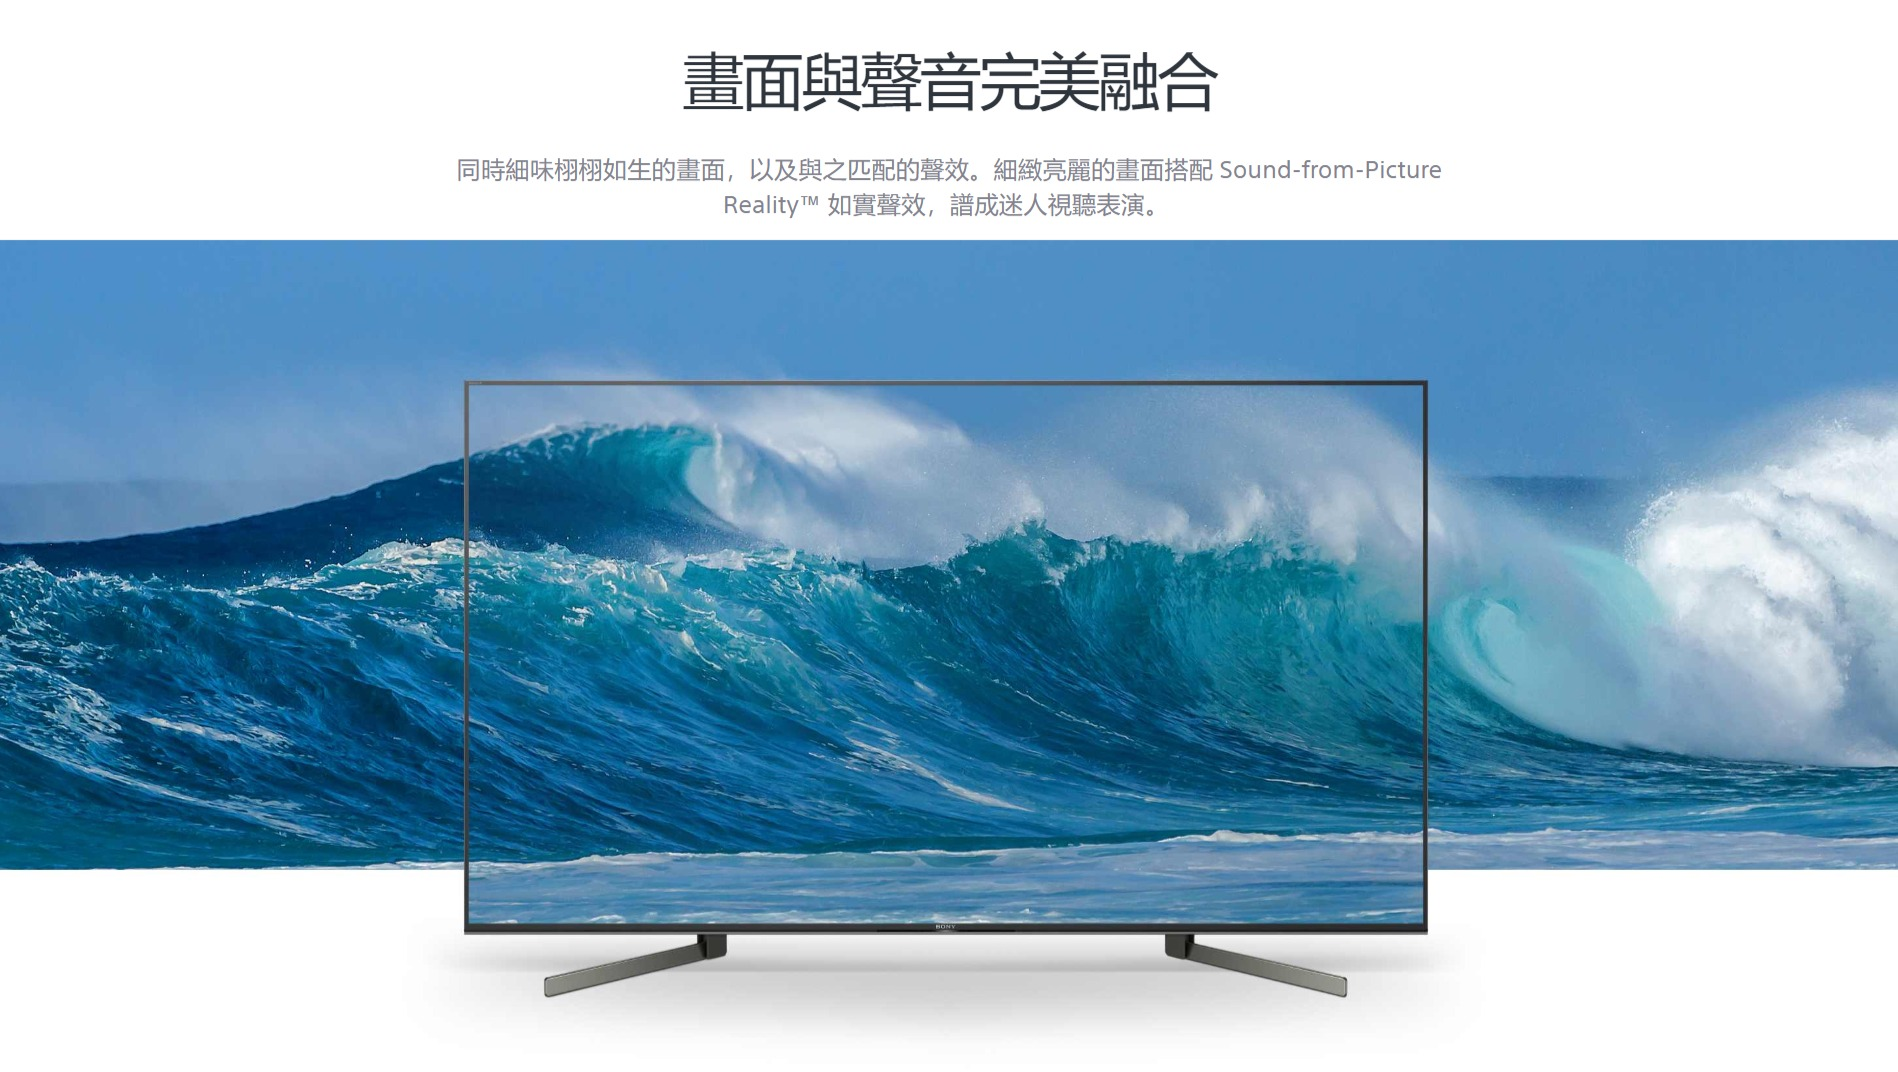 Sony | KD-55X9500G 55 Series BRAVIA 4K HDR Android TV™ X9500G